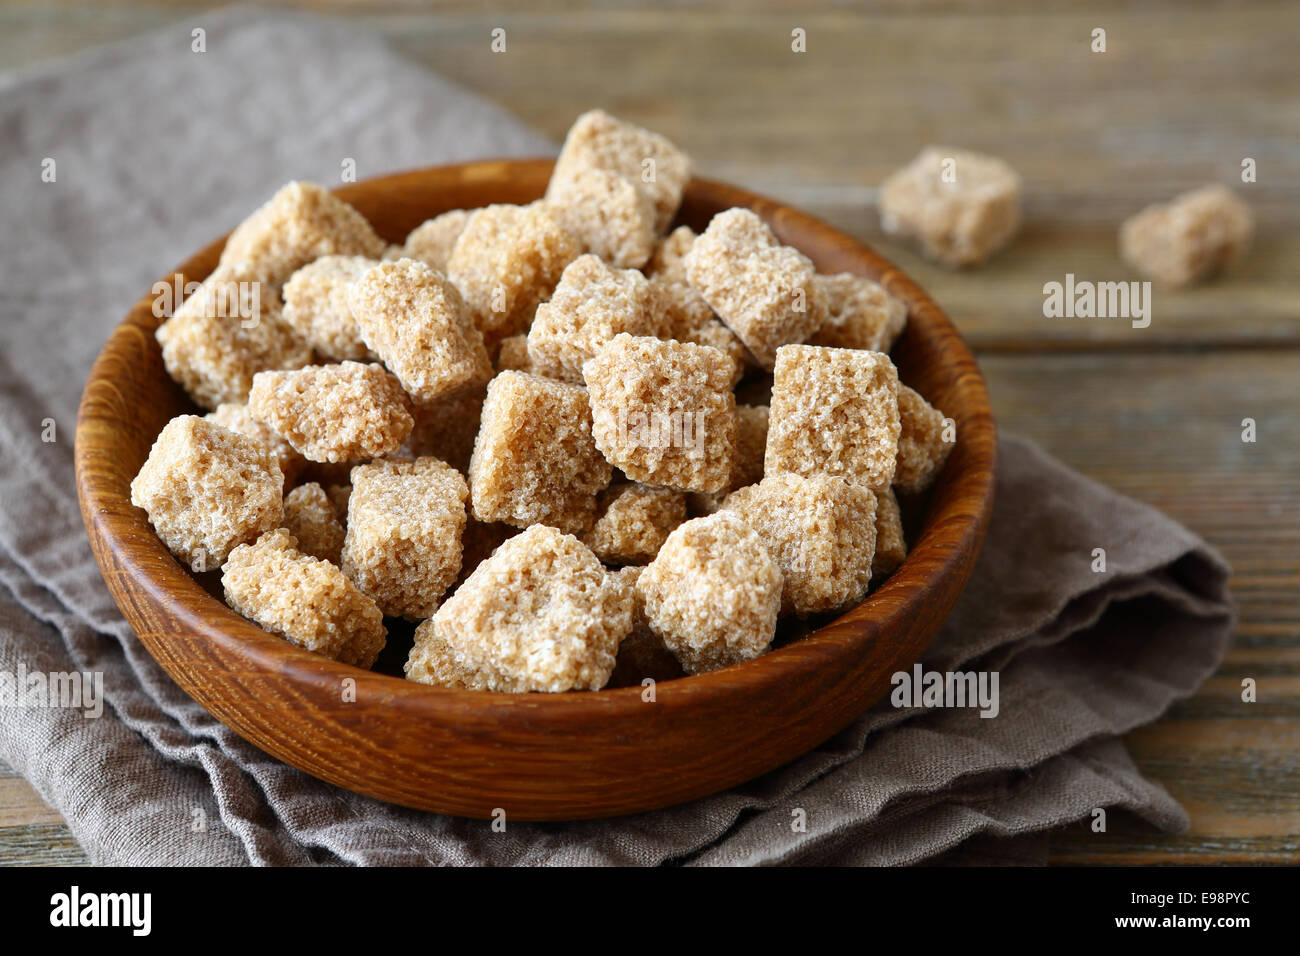 Sweet brown sugar in a bowl, close-up - Stock Image